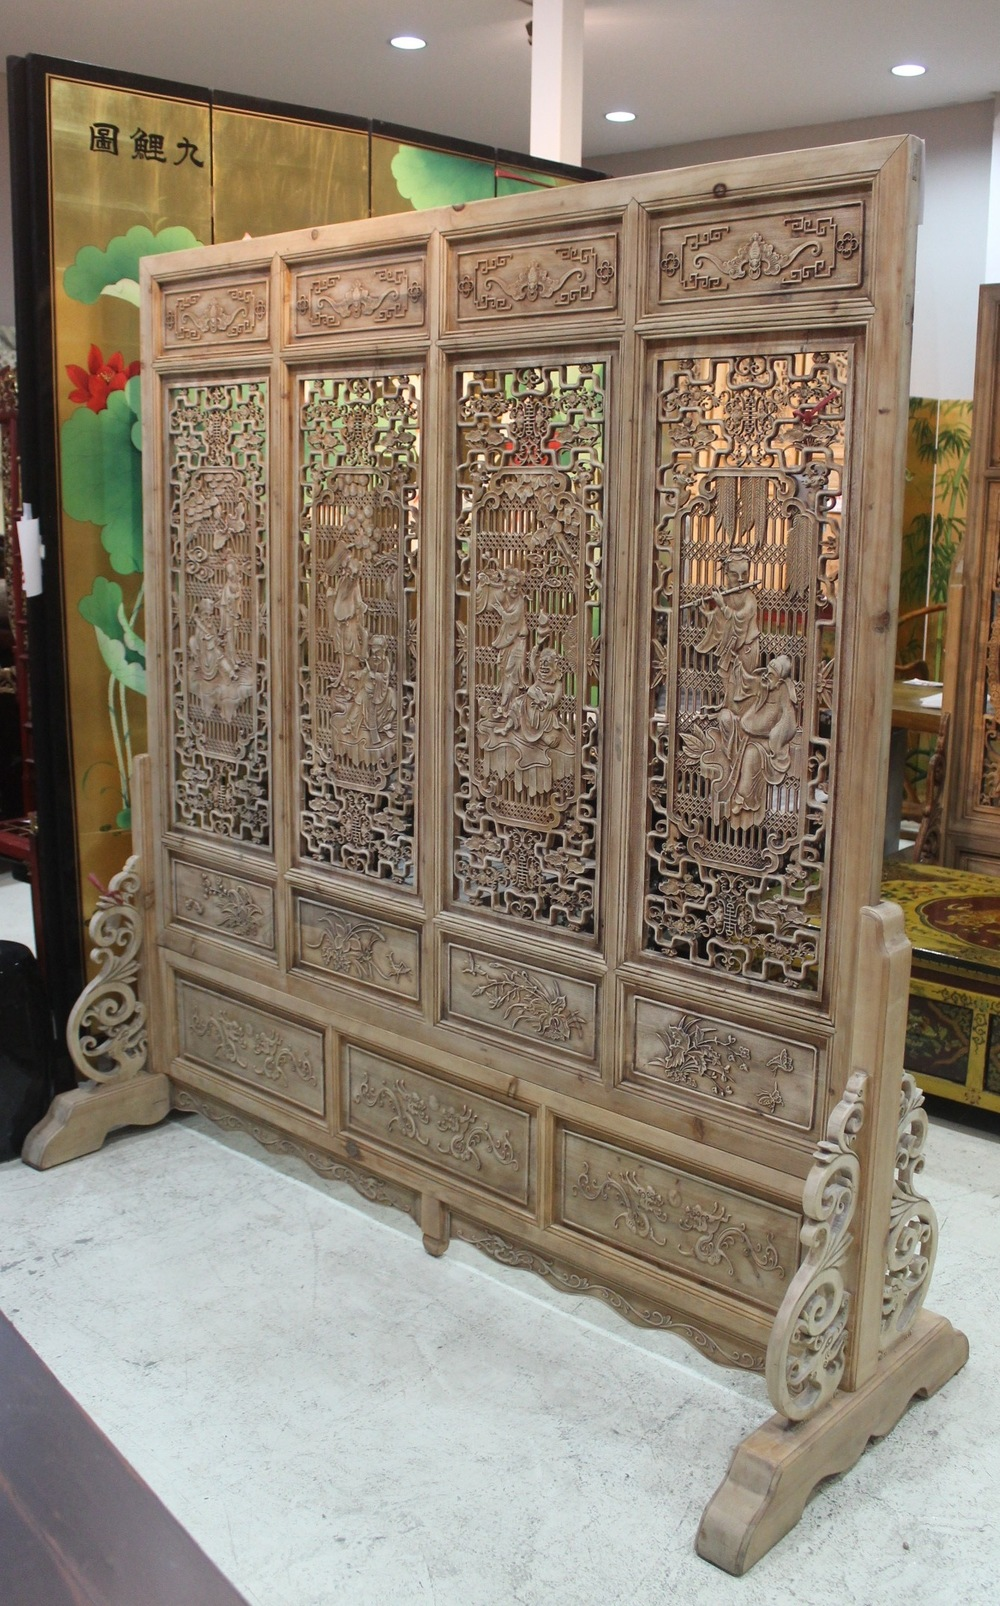 Screen with carvings of the 8 immortals, carved on both sides. L168 x H180cm. Now on sale at S$2,000.00. Reproduction.